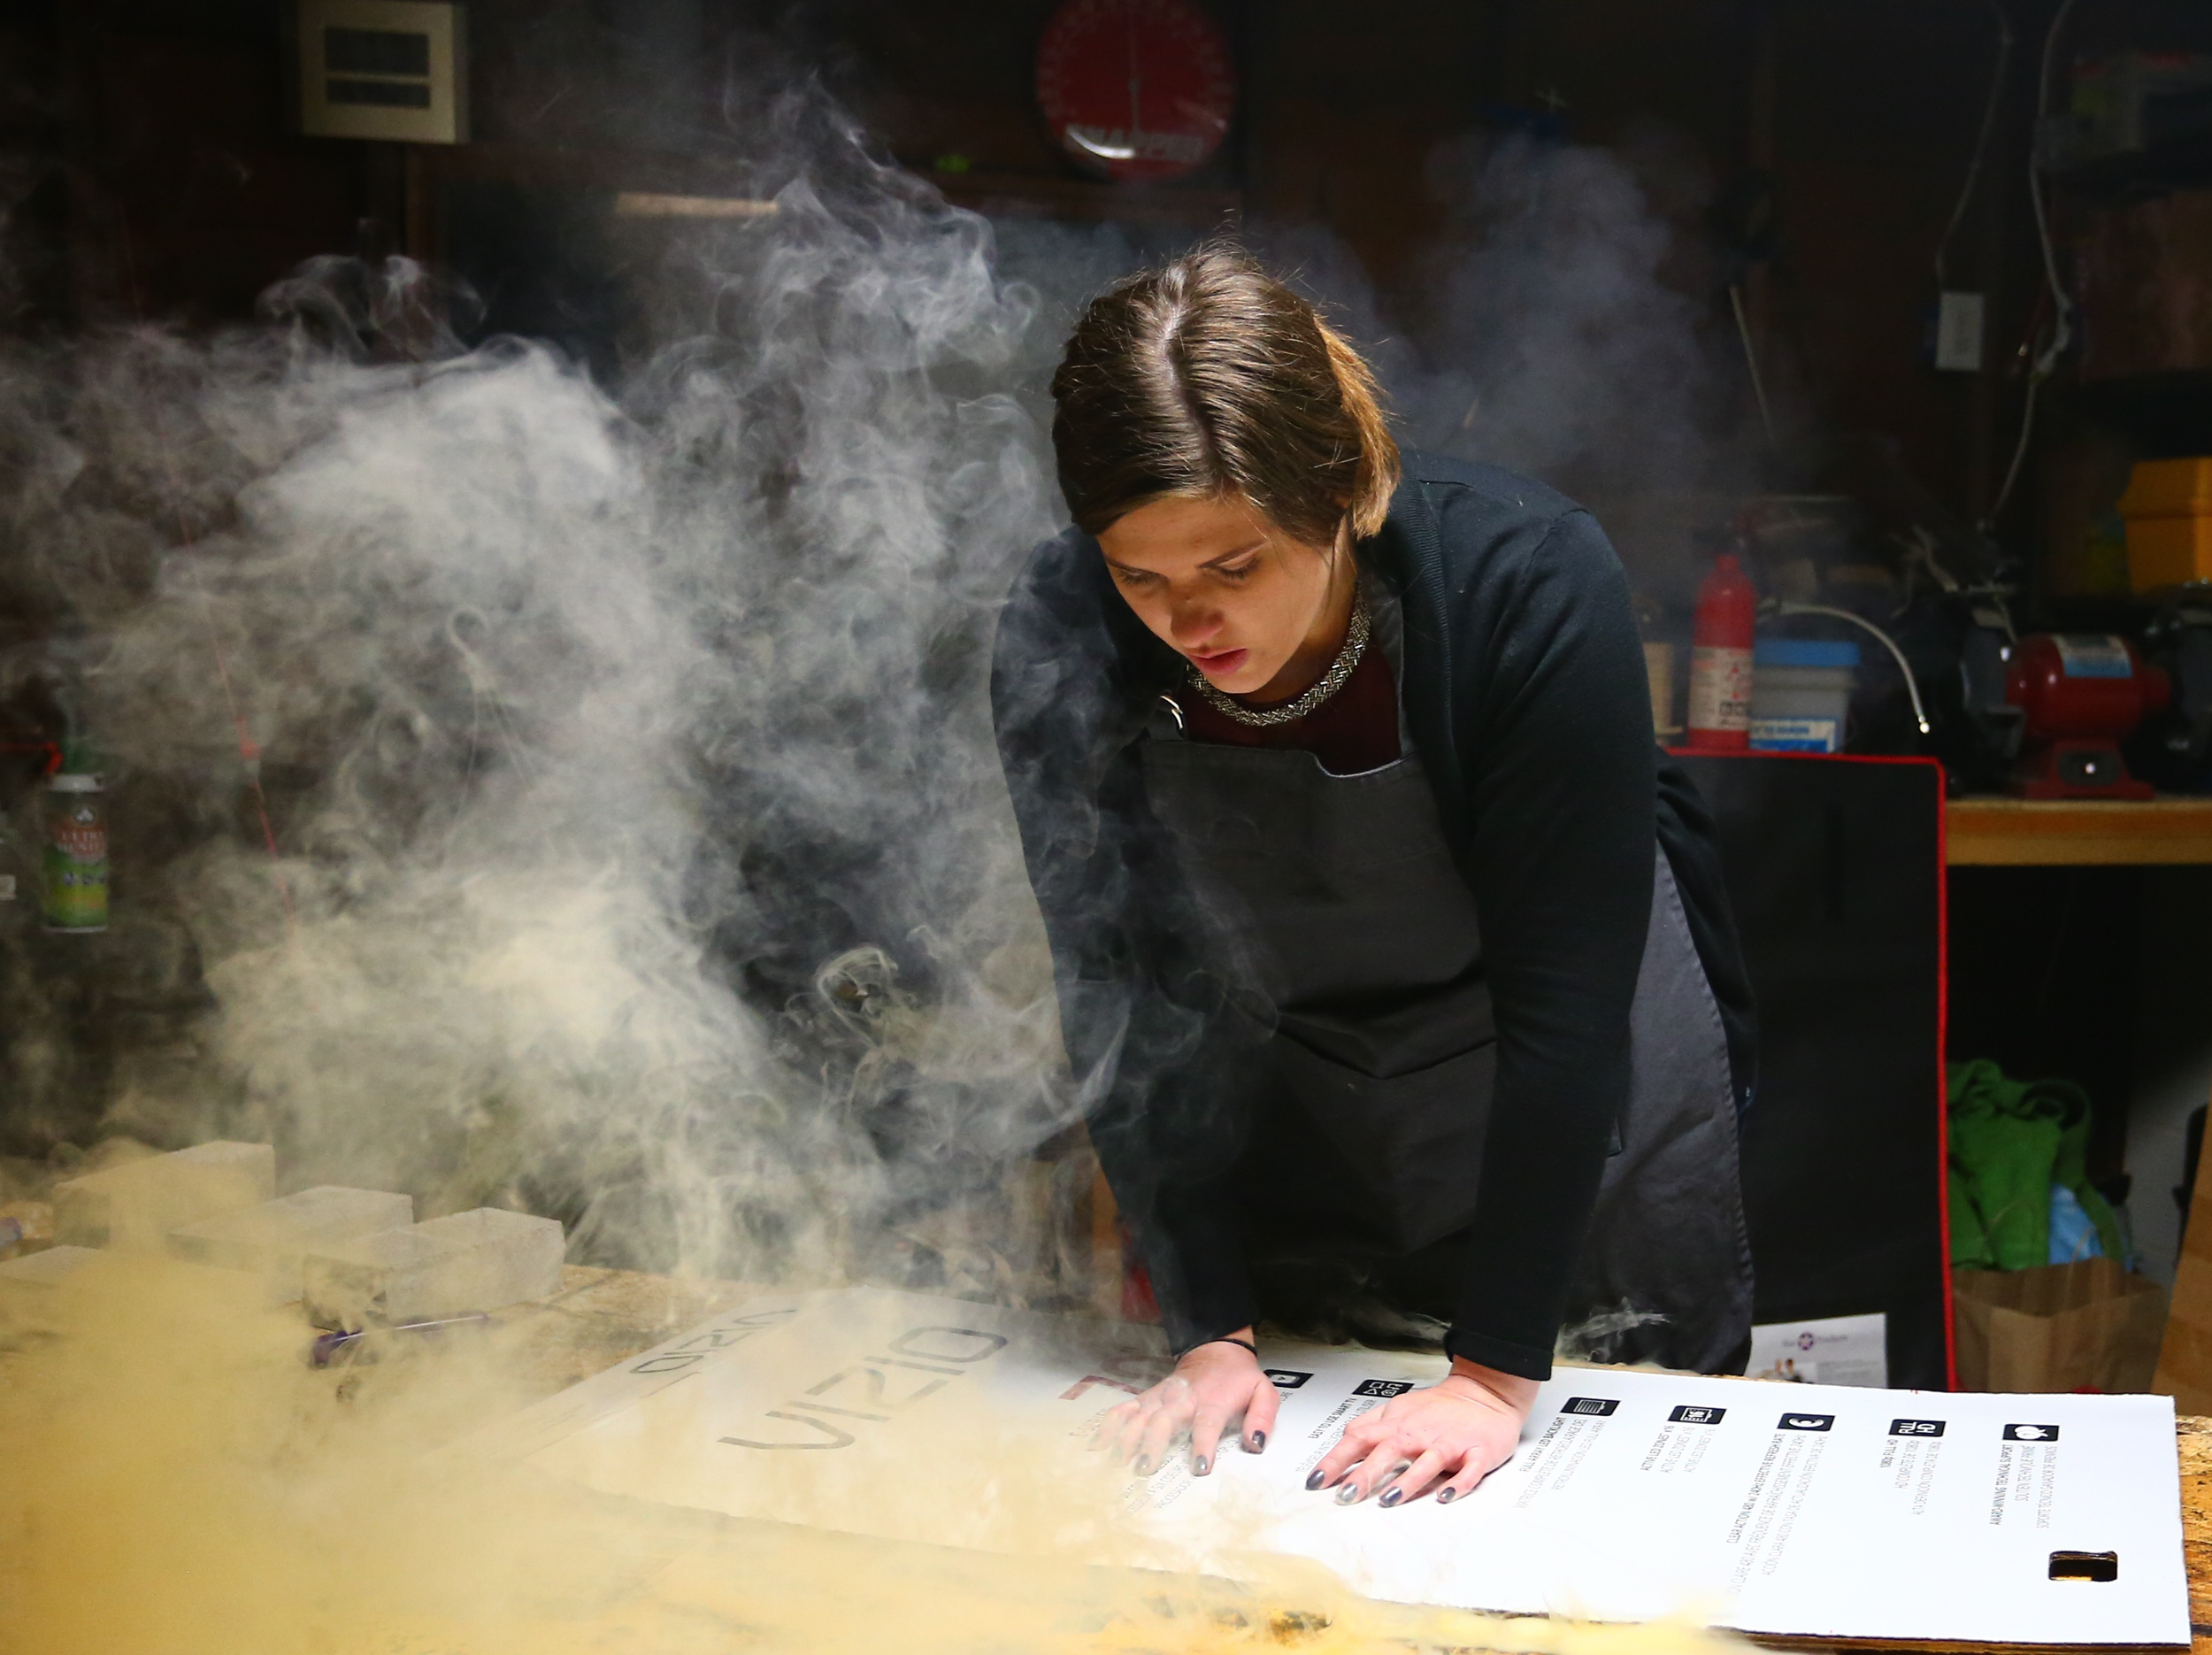 Lisa Friedrich puts pressure on different areas of the matboard during the burn to produce different levels of charring // Photo courtesy of Lisa Friedrich